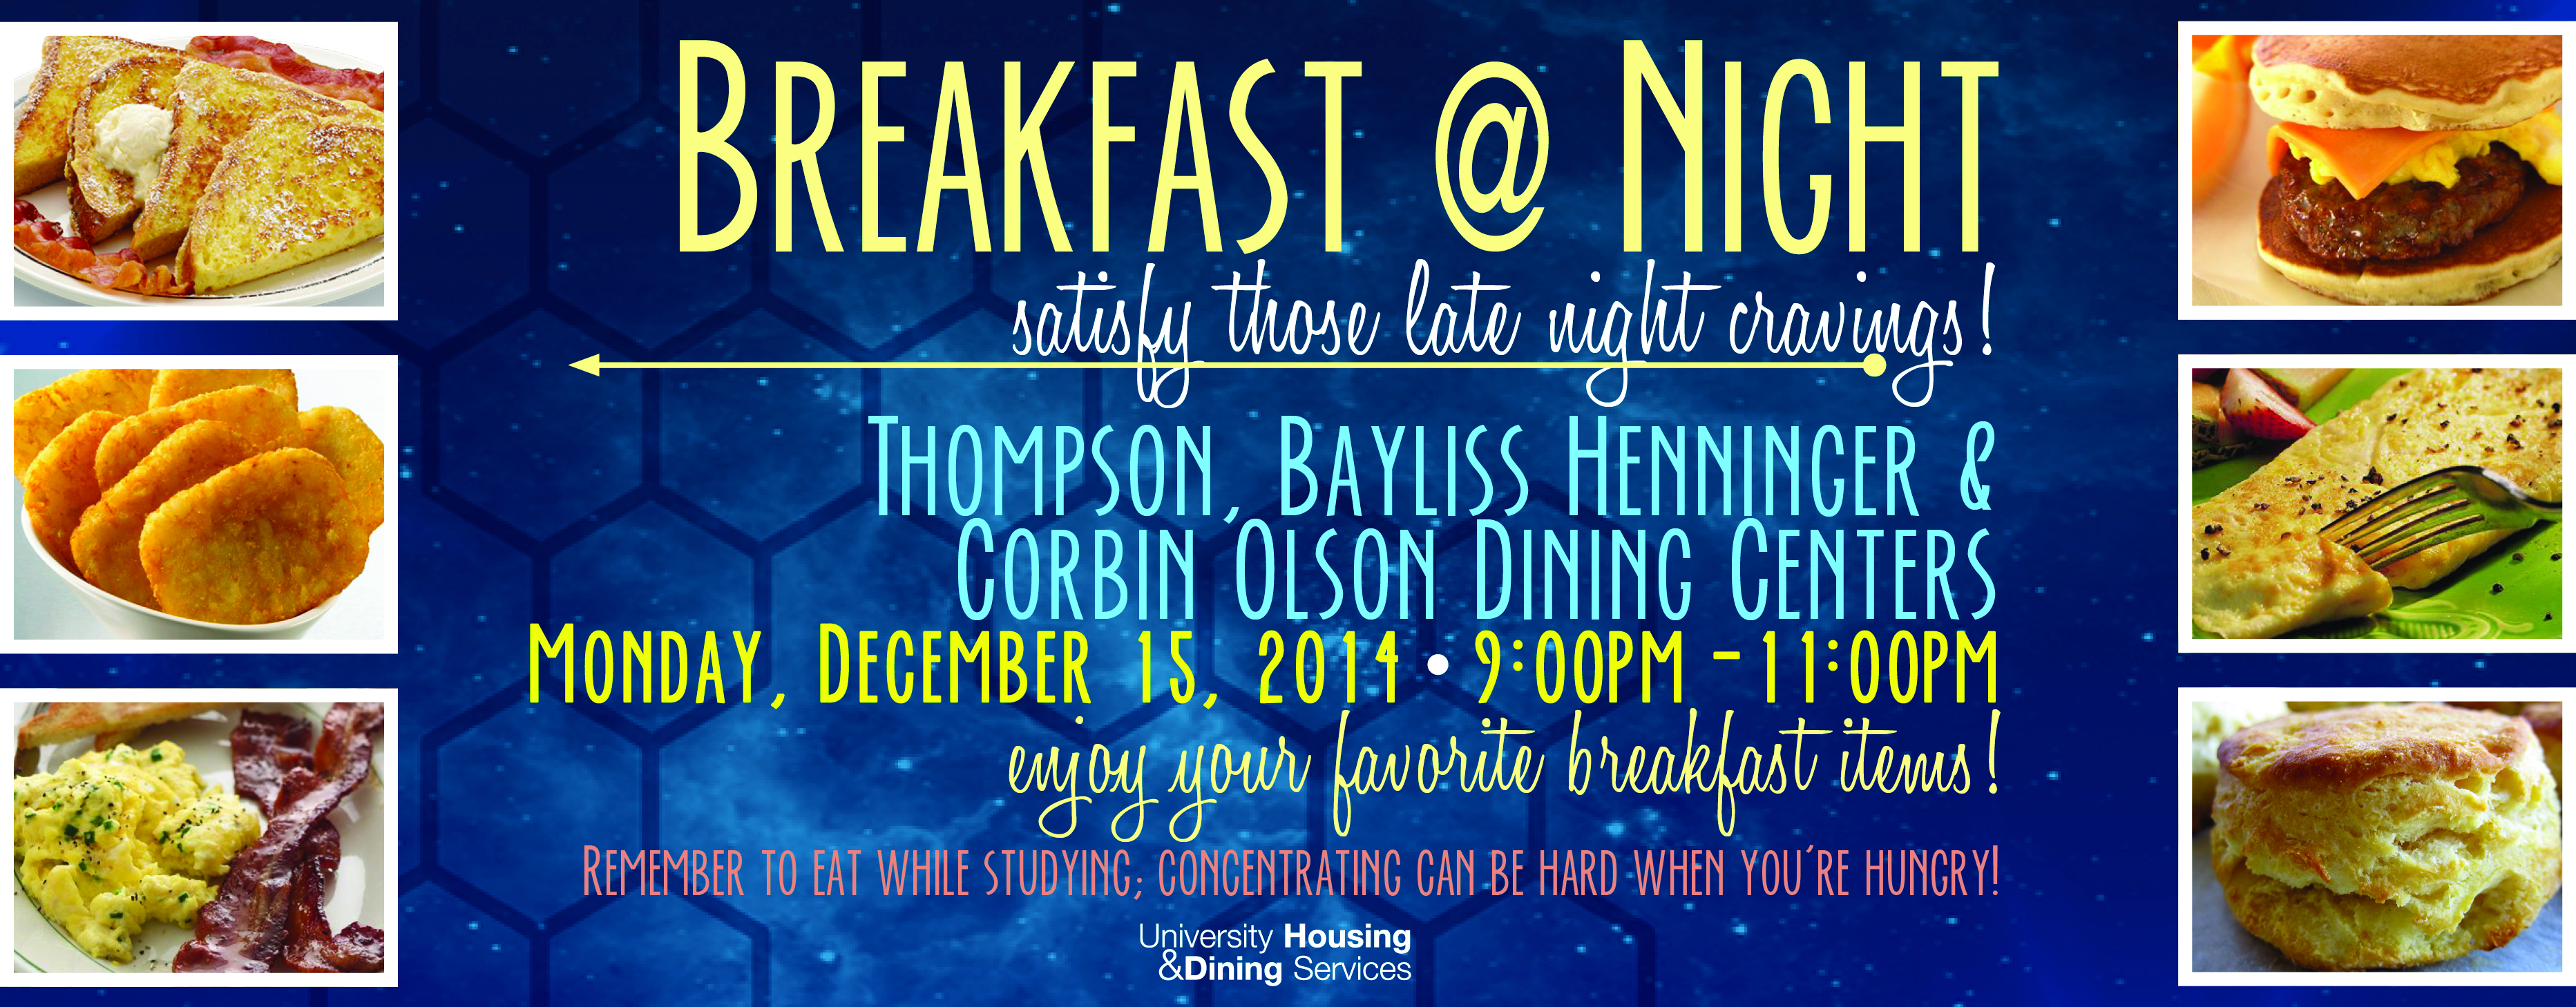 Satisfy those late night cravings! Thompson, Bayliss-Henninger & Corbin-Olson Dining Centers. Monday, December 15, 2014 9:00 - 11:00 p.m. Enjoy your favorite breakfast items. Remember to eat while studying; concentrating can be hard when you're hungry!